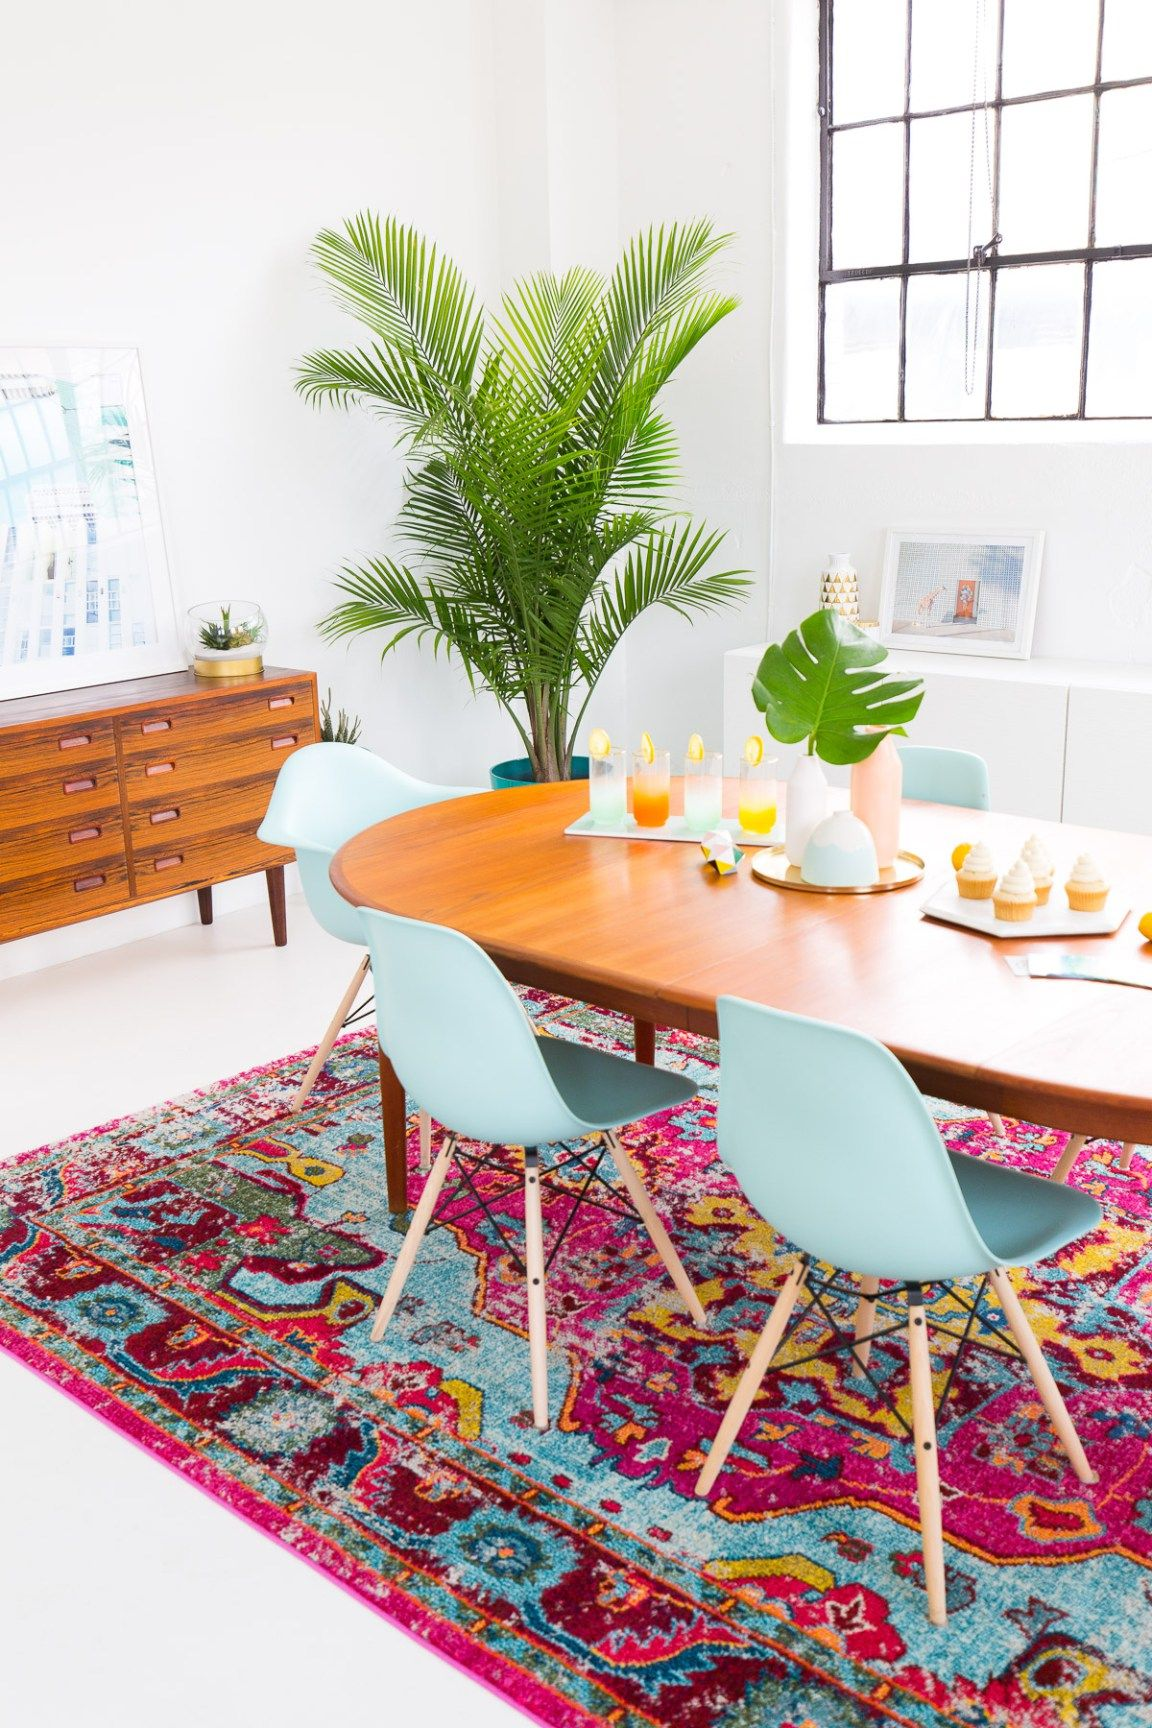 dining room, white wall, white floor, pink patterned rug, blue modern chairs, wooden cabinet, wooden oval table